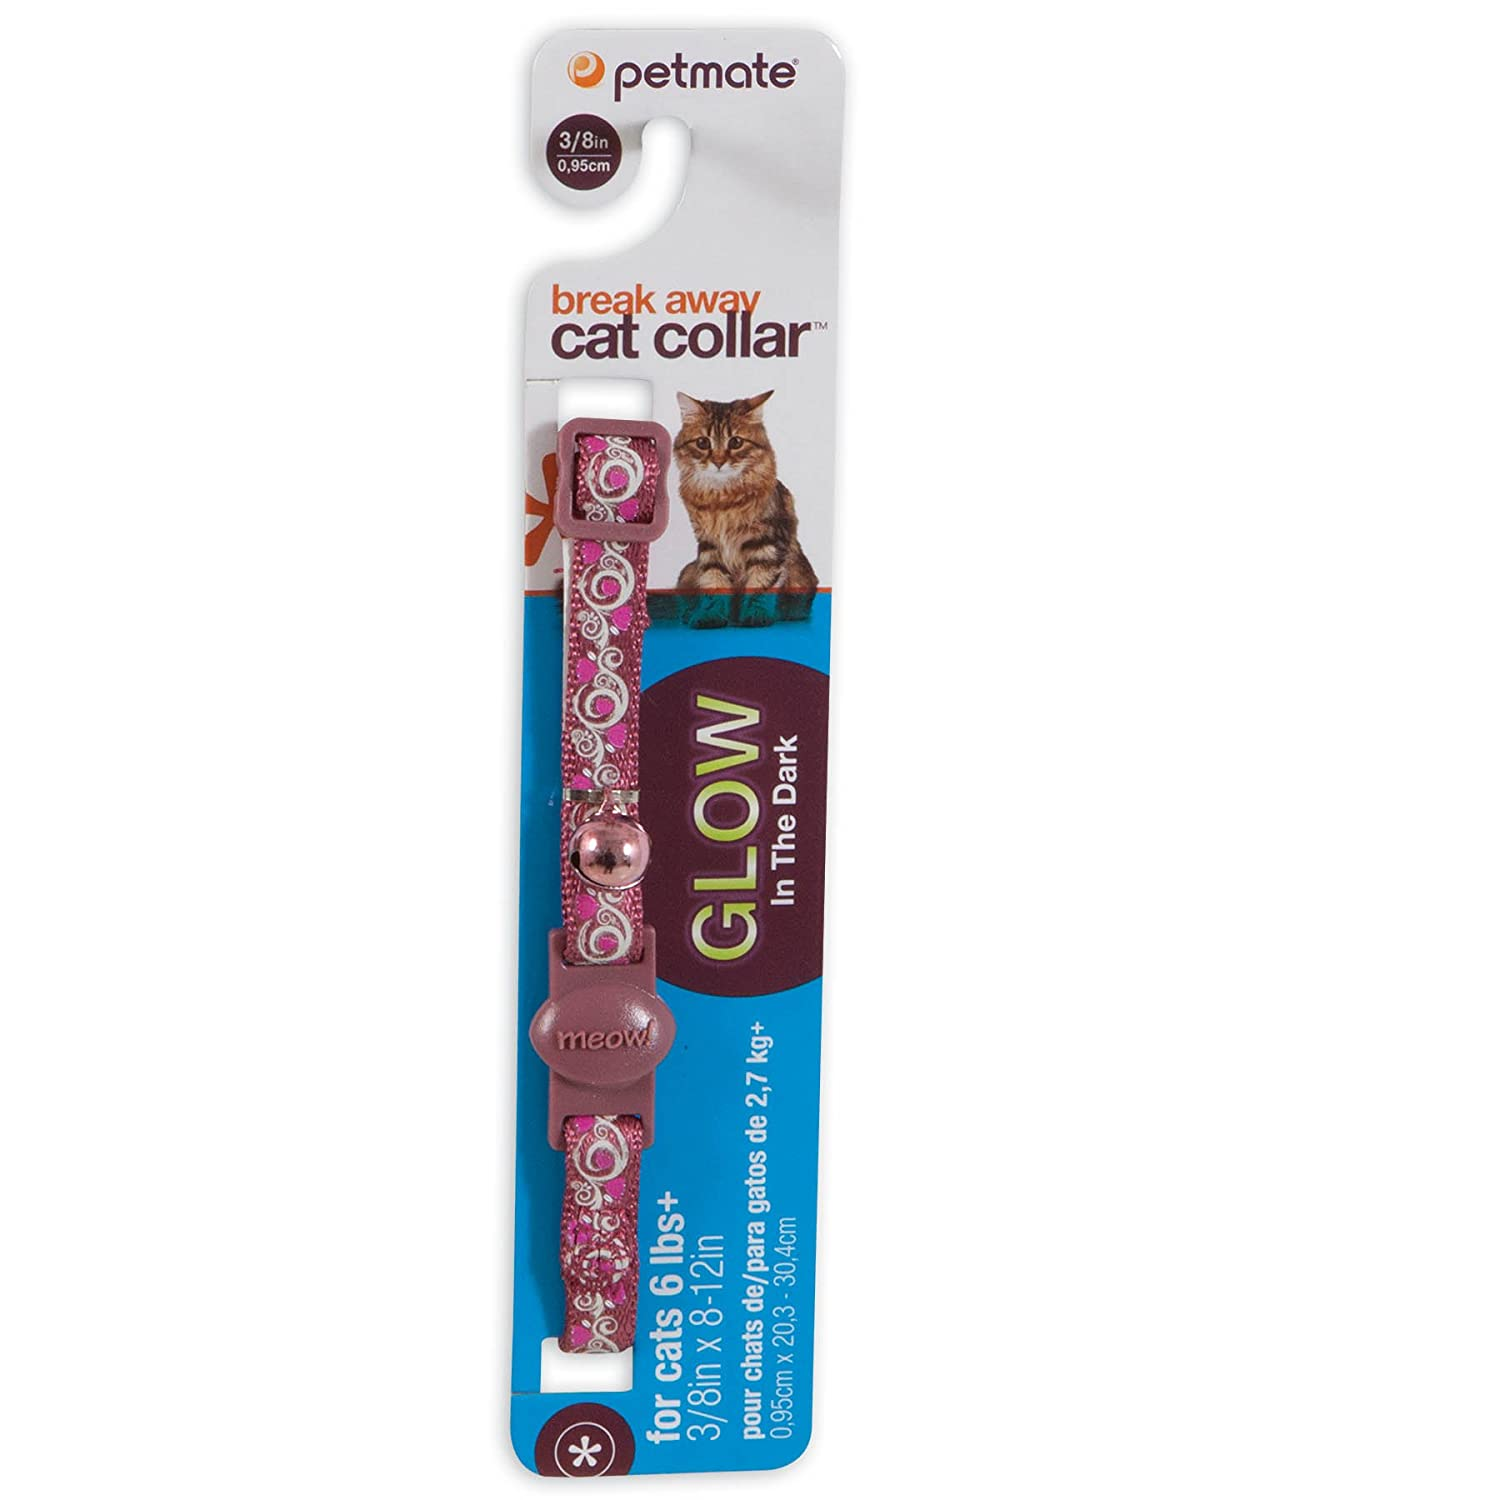 Pet Supplies : Petmate Cat Glow Collar, Twilight, 3/8